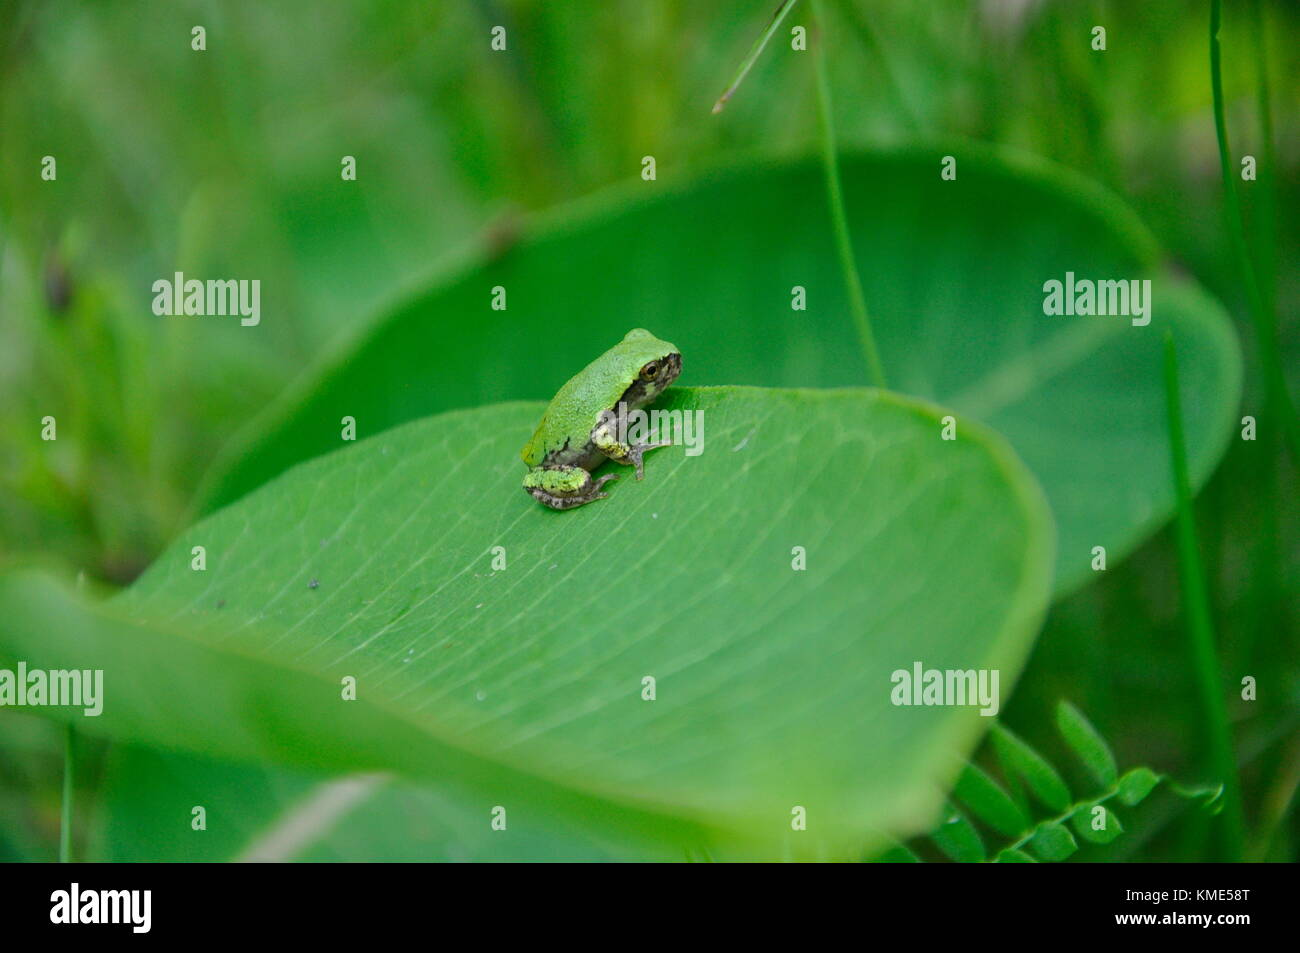 Eastern Gray Tree Frog sitting on Milkweed - Stock Image